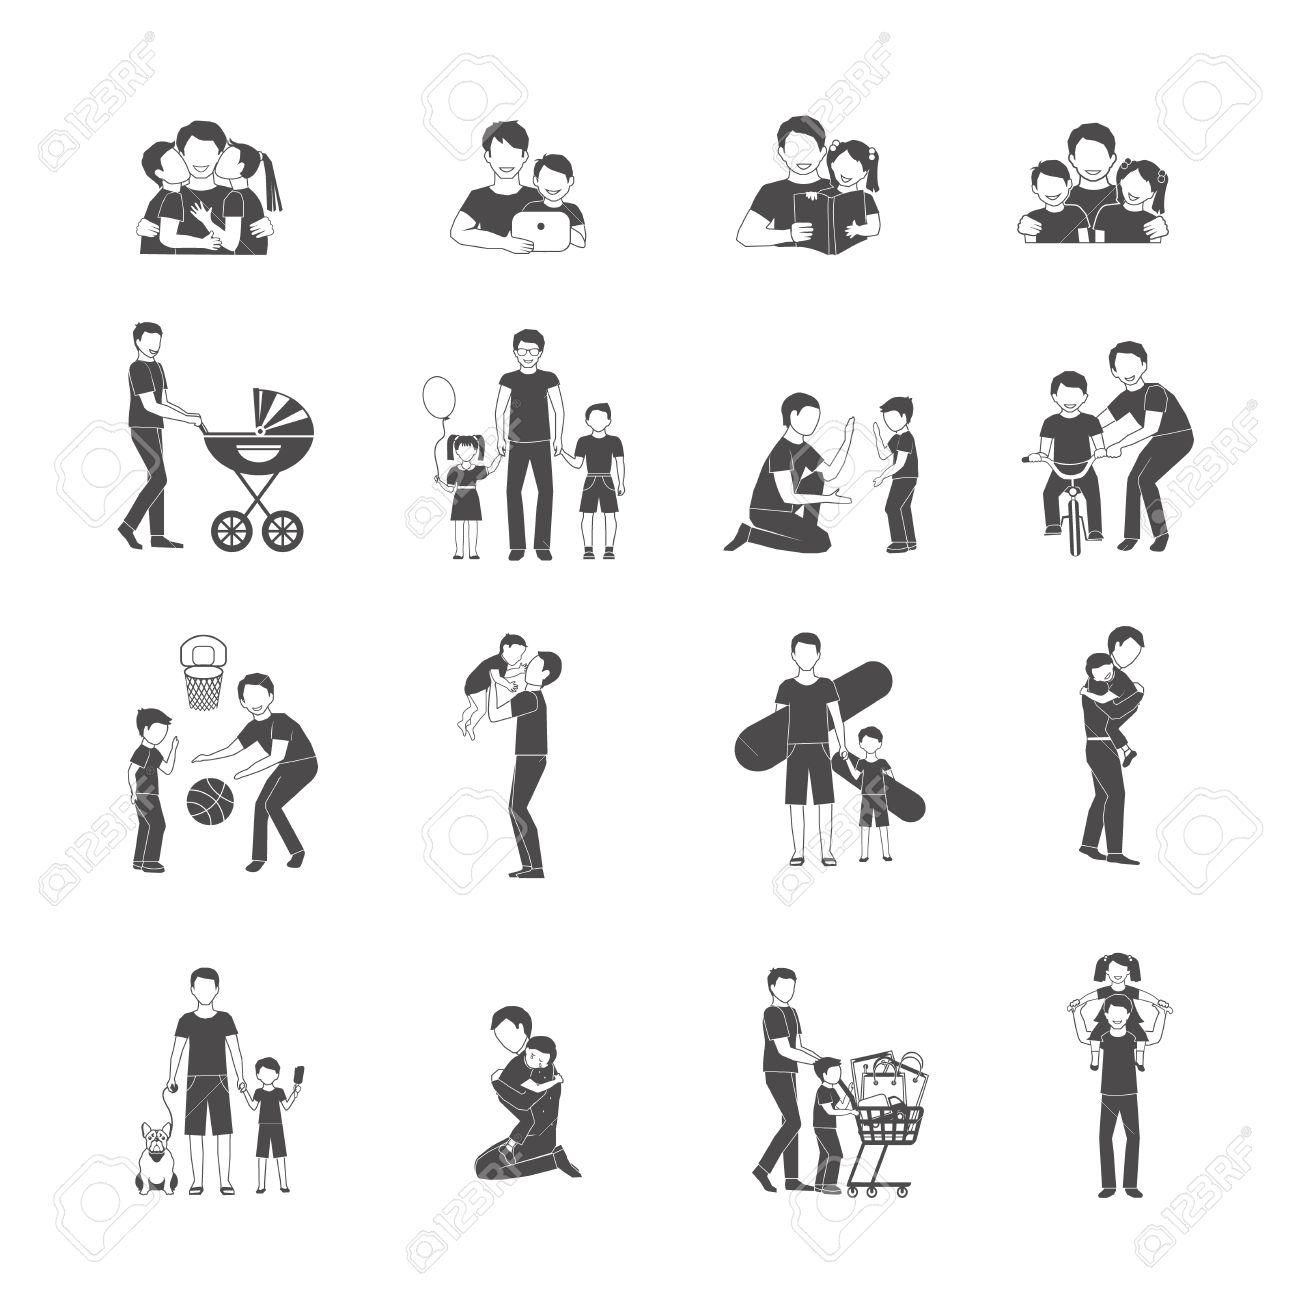 Fatherhood black icon set with happy family holidays symbols fatherhood black icon set with happy family holidays symbols isolated vector illustration stock vector 41536027 biocorpaavc Images